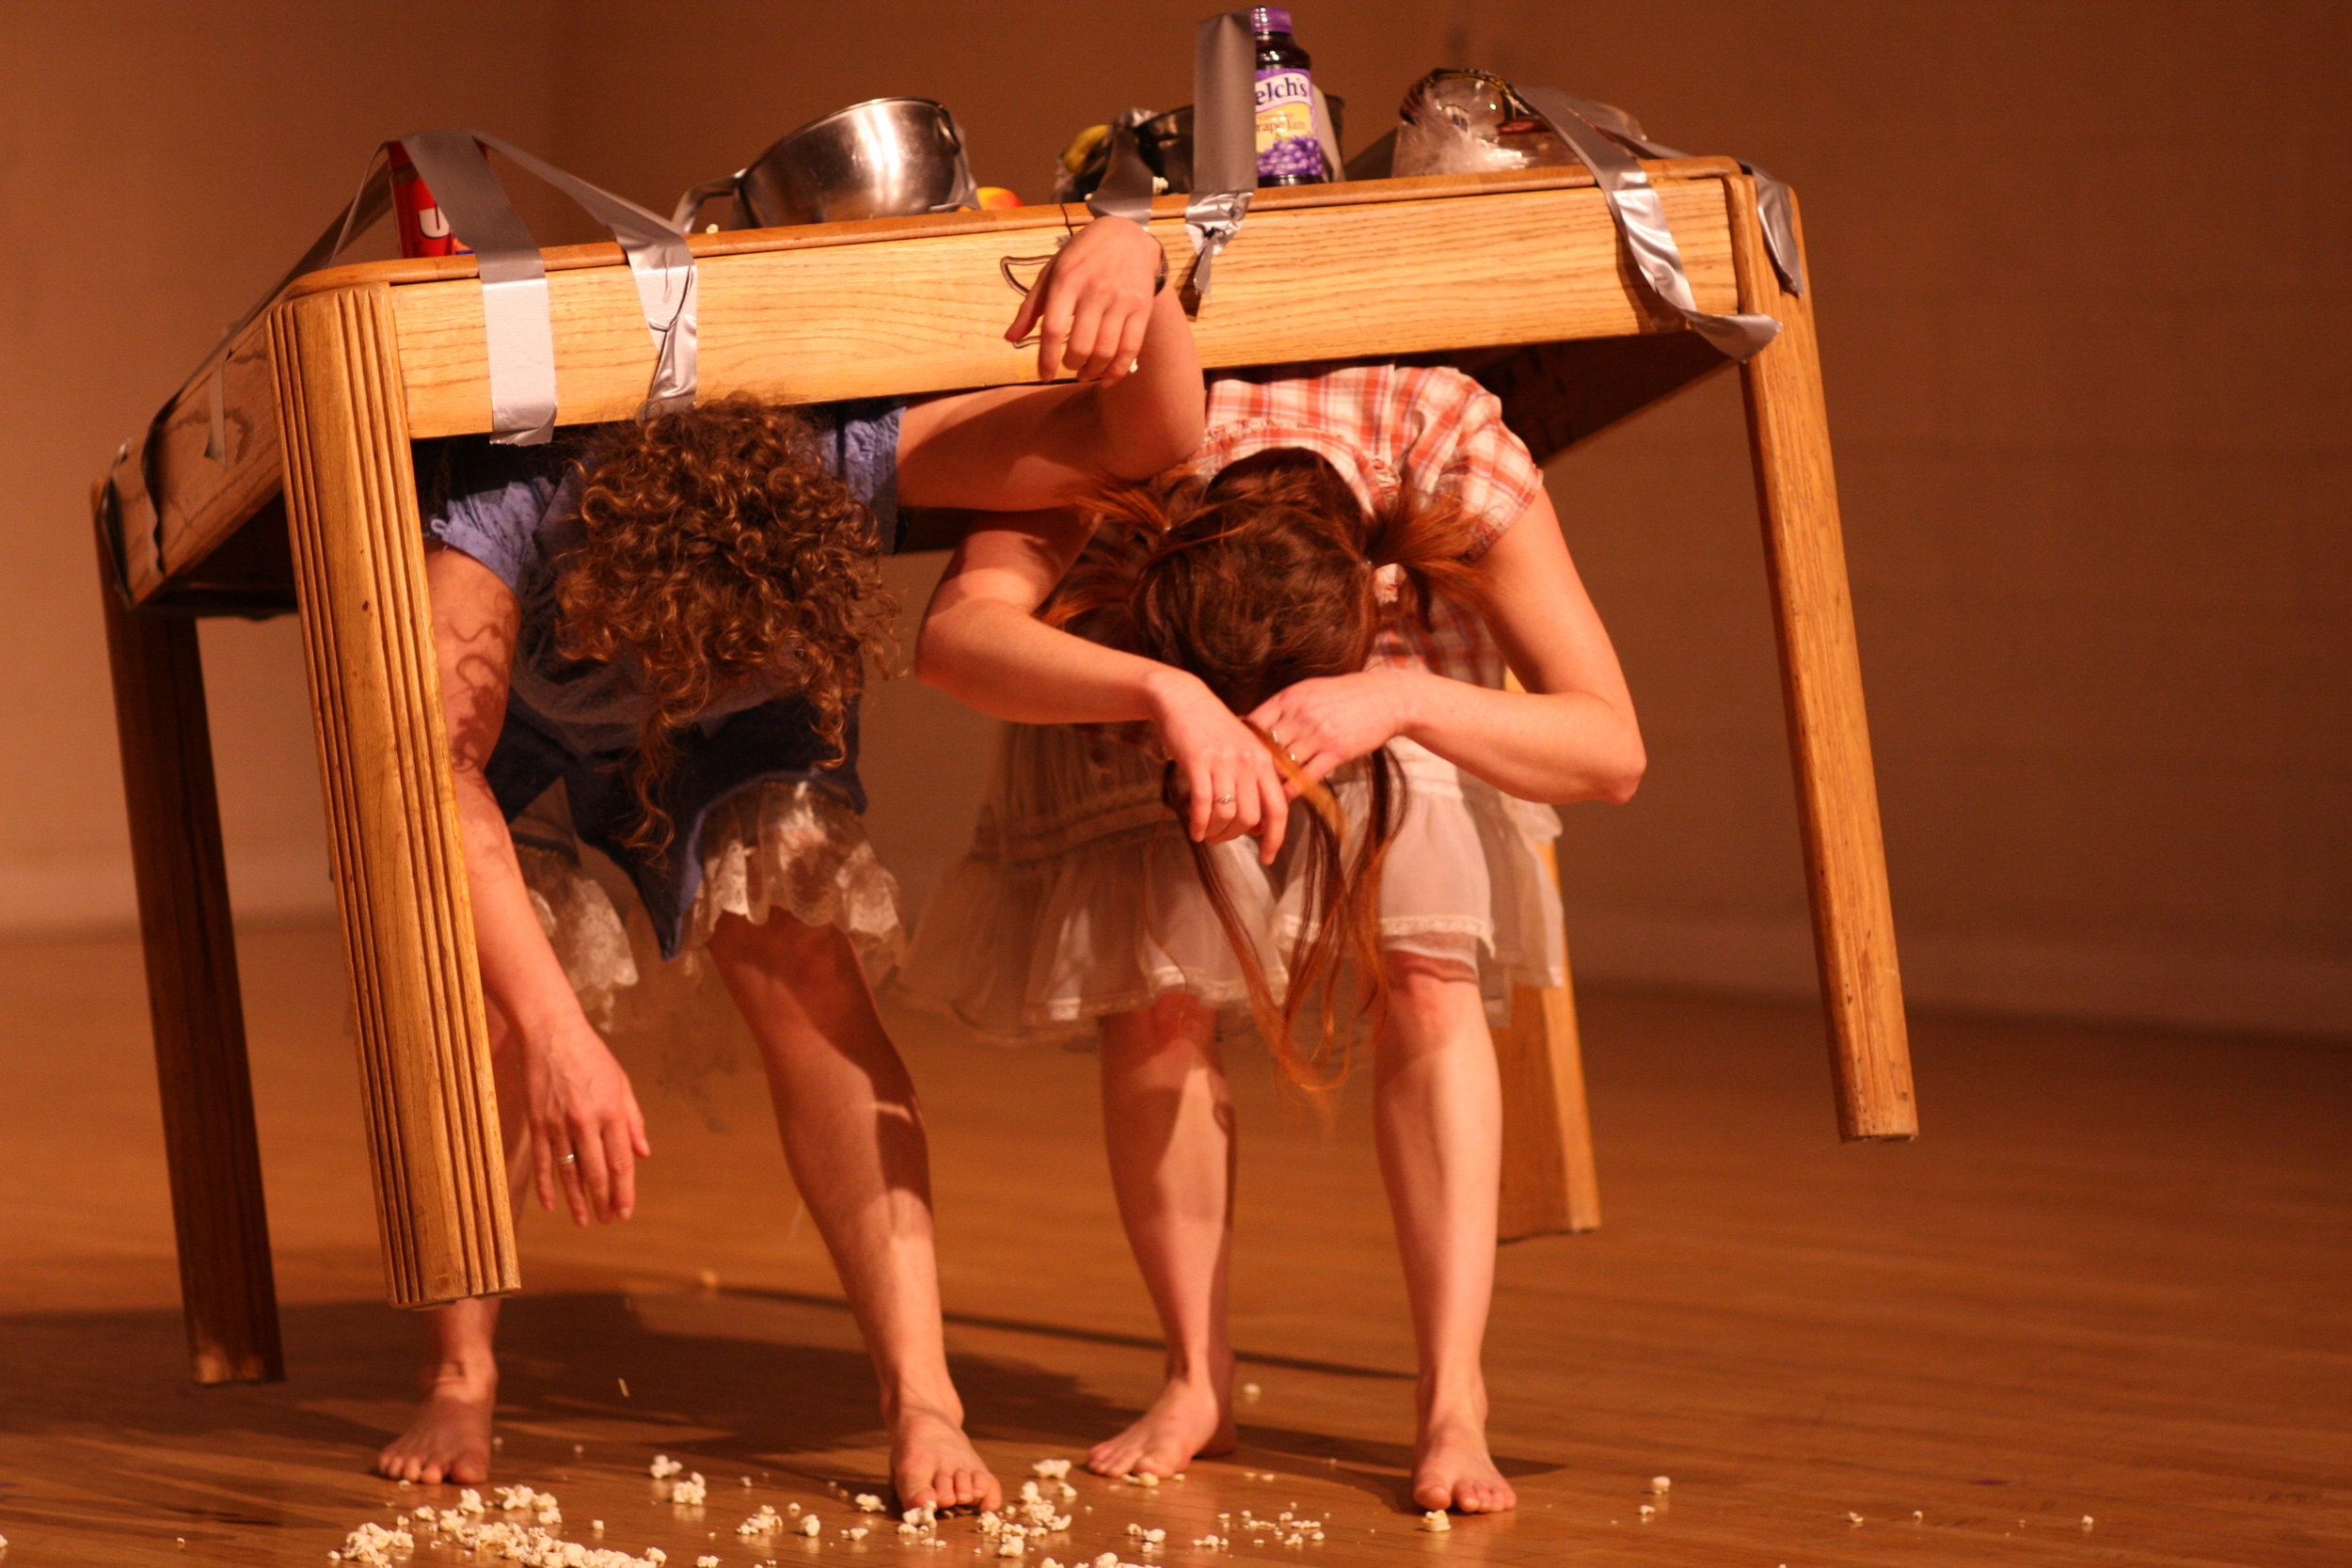 Eating And Dreaming, with Breanna Rogers. Performed in Colorado and ARizona, 2008/2009. Photo by Naropa University Staff.